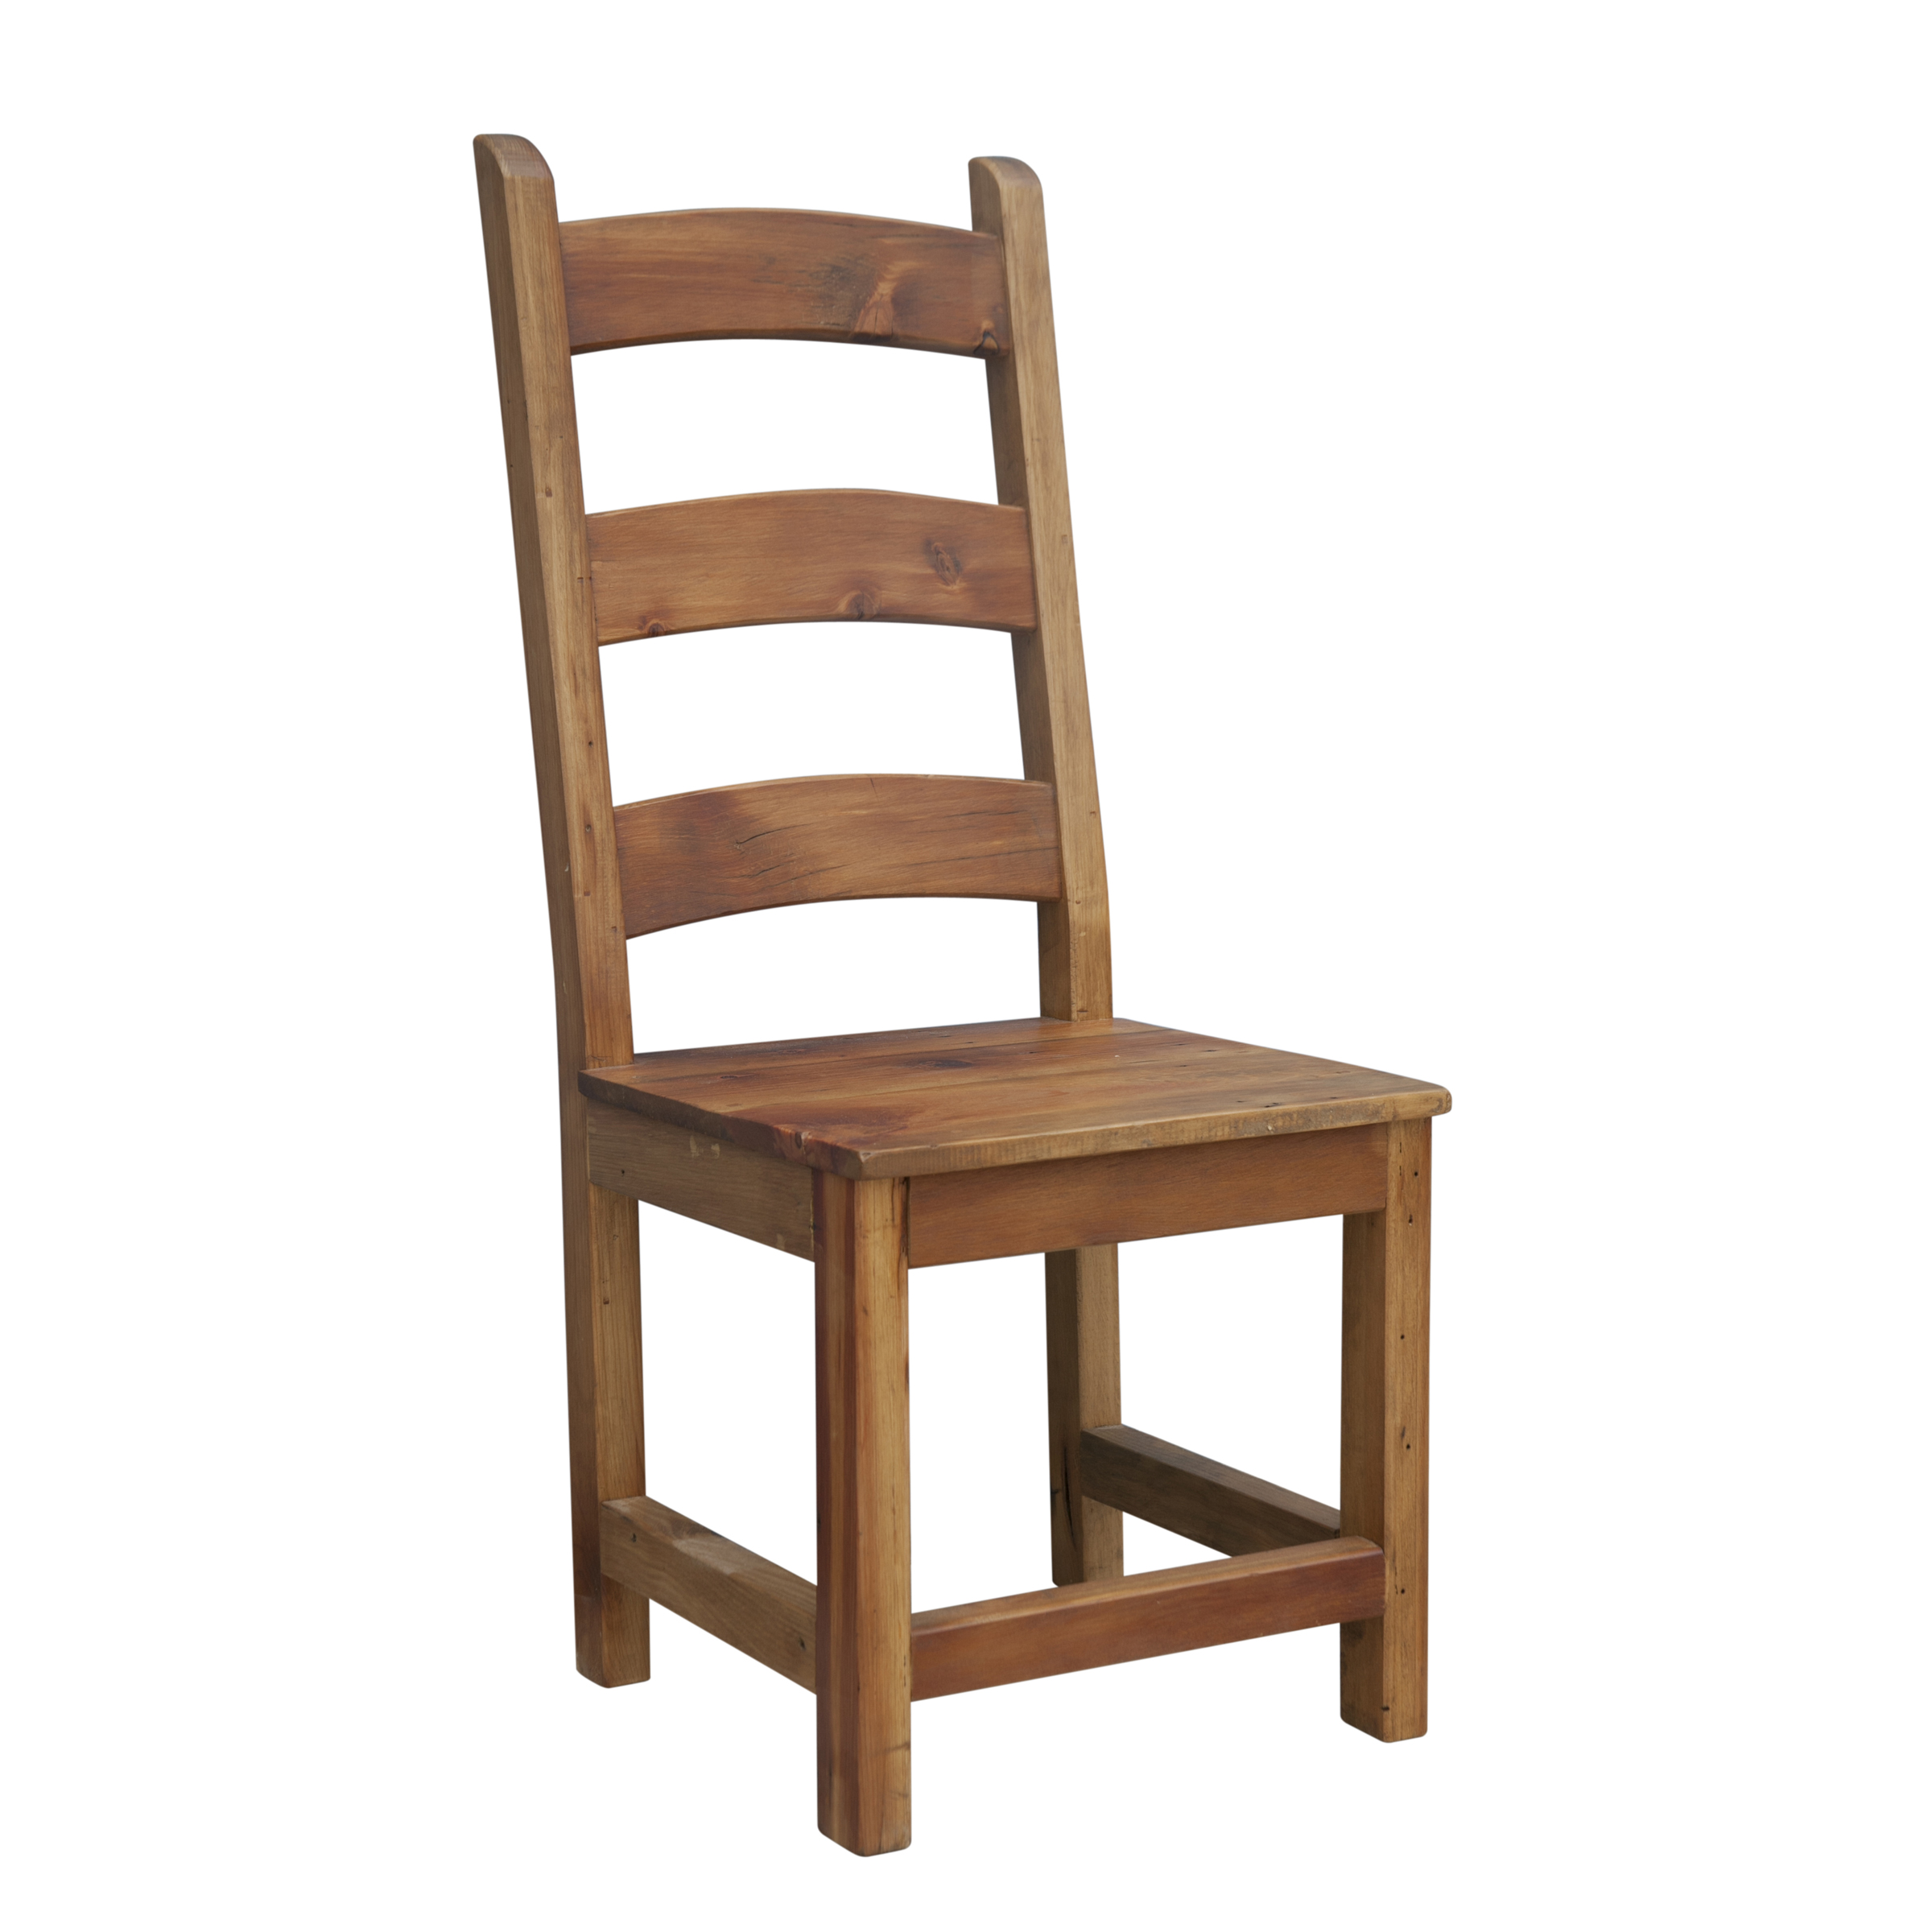 Buy Harrison Rustic Dining Chair Online